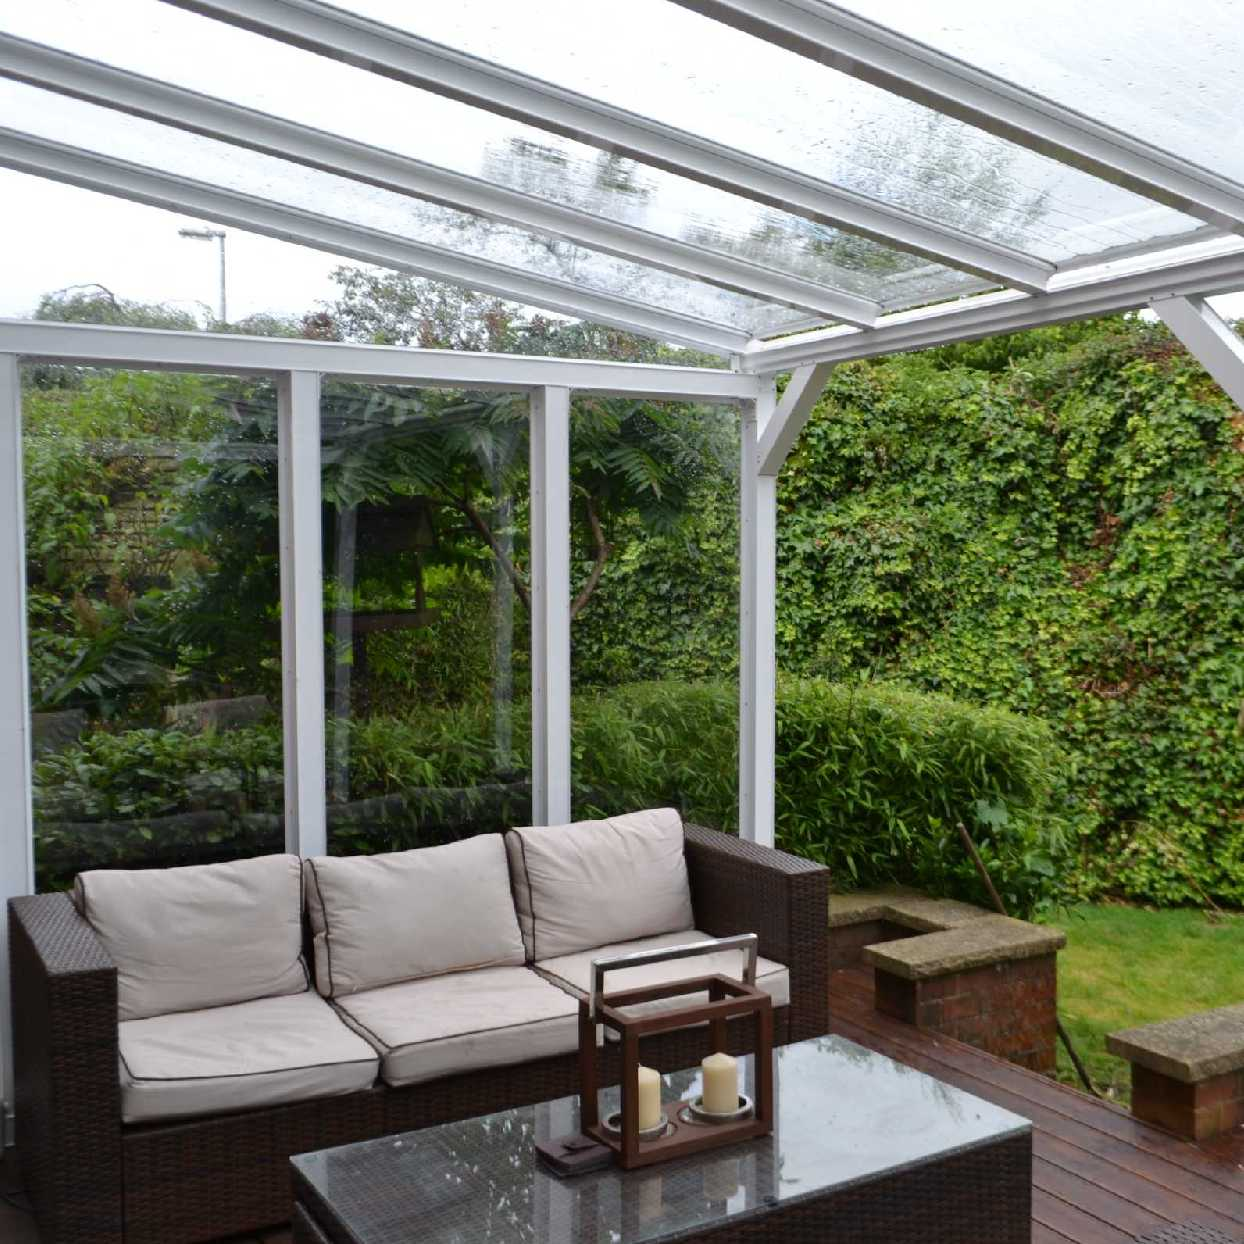 Omega Smart Lean-To Canopy with 6mm Glass Clear Plate Polycarbonate Glazing - 2.8m (W) x 3.5m (P), (2) Supporting Posts